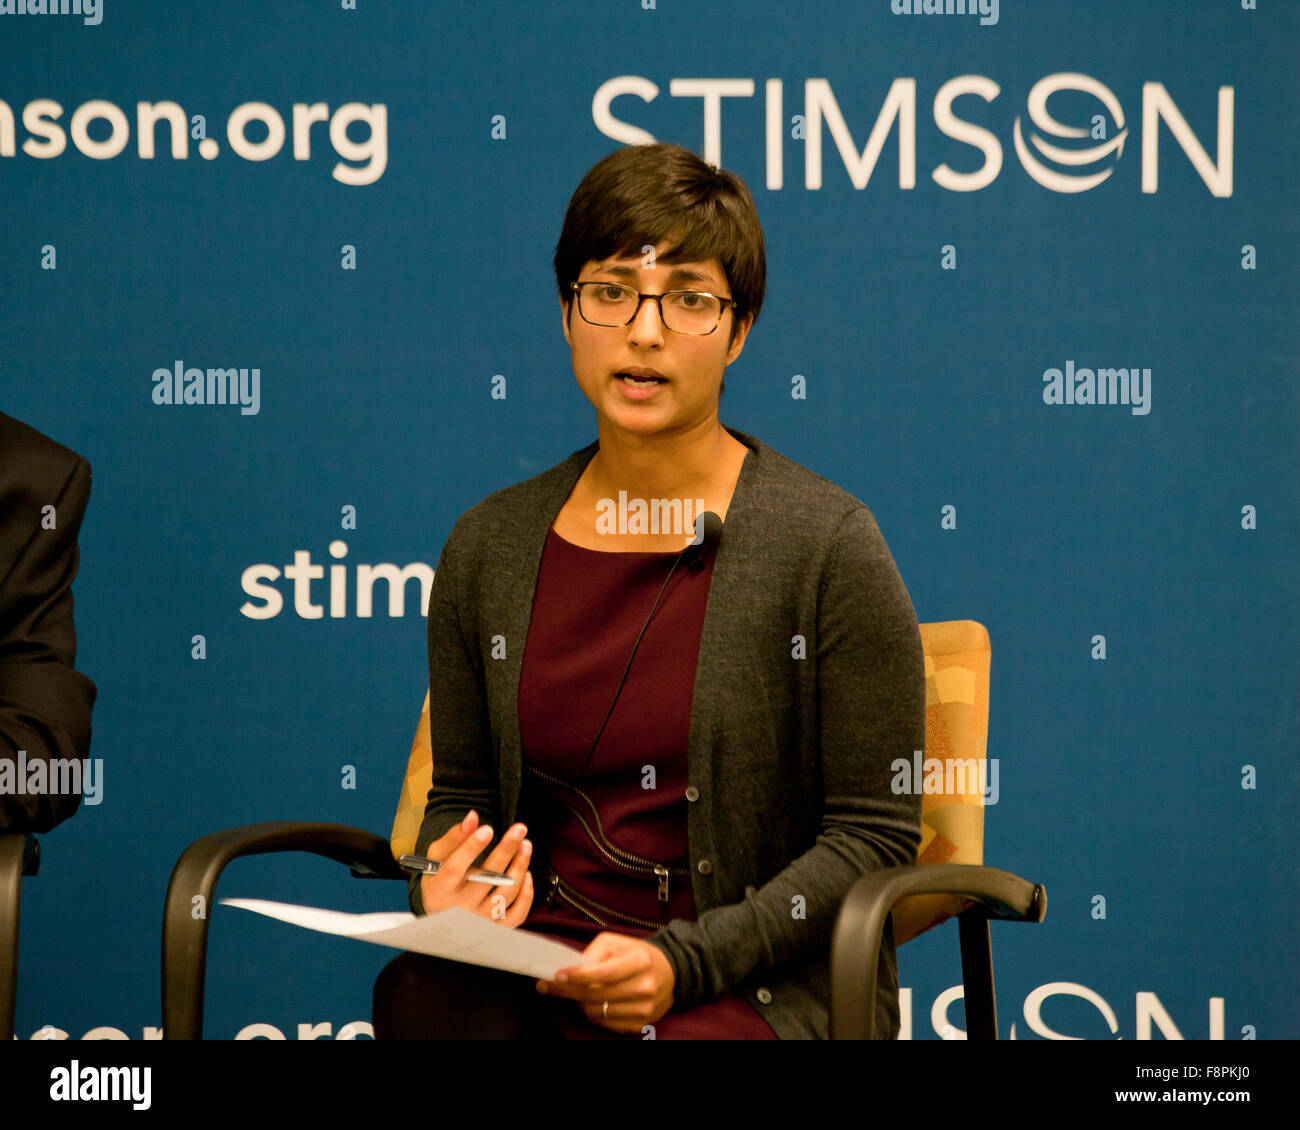 Aditi Gorur speaking on Humanitarian Crises in the Middle East and Africa at Stimson Center - Washington, DC USA - Stock Image